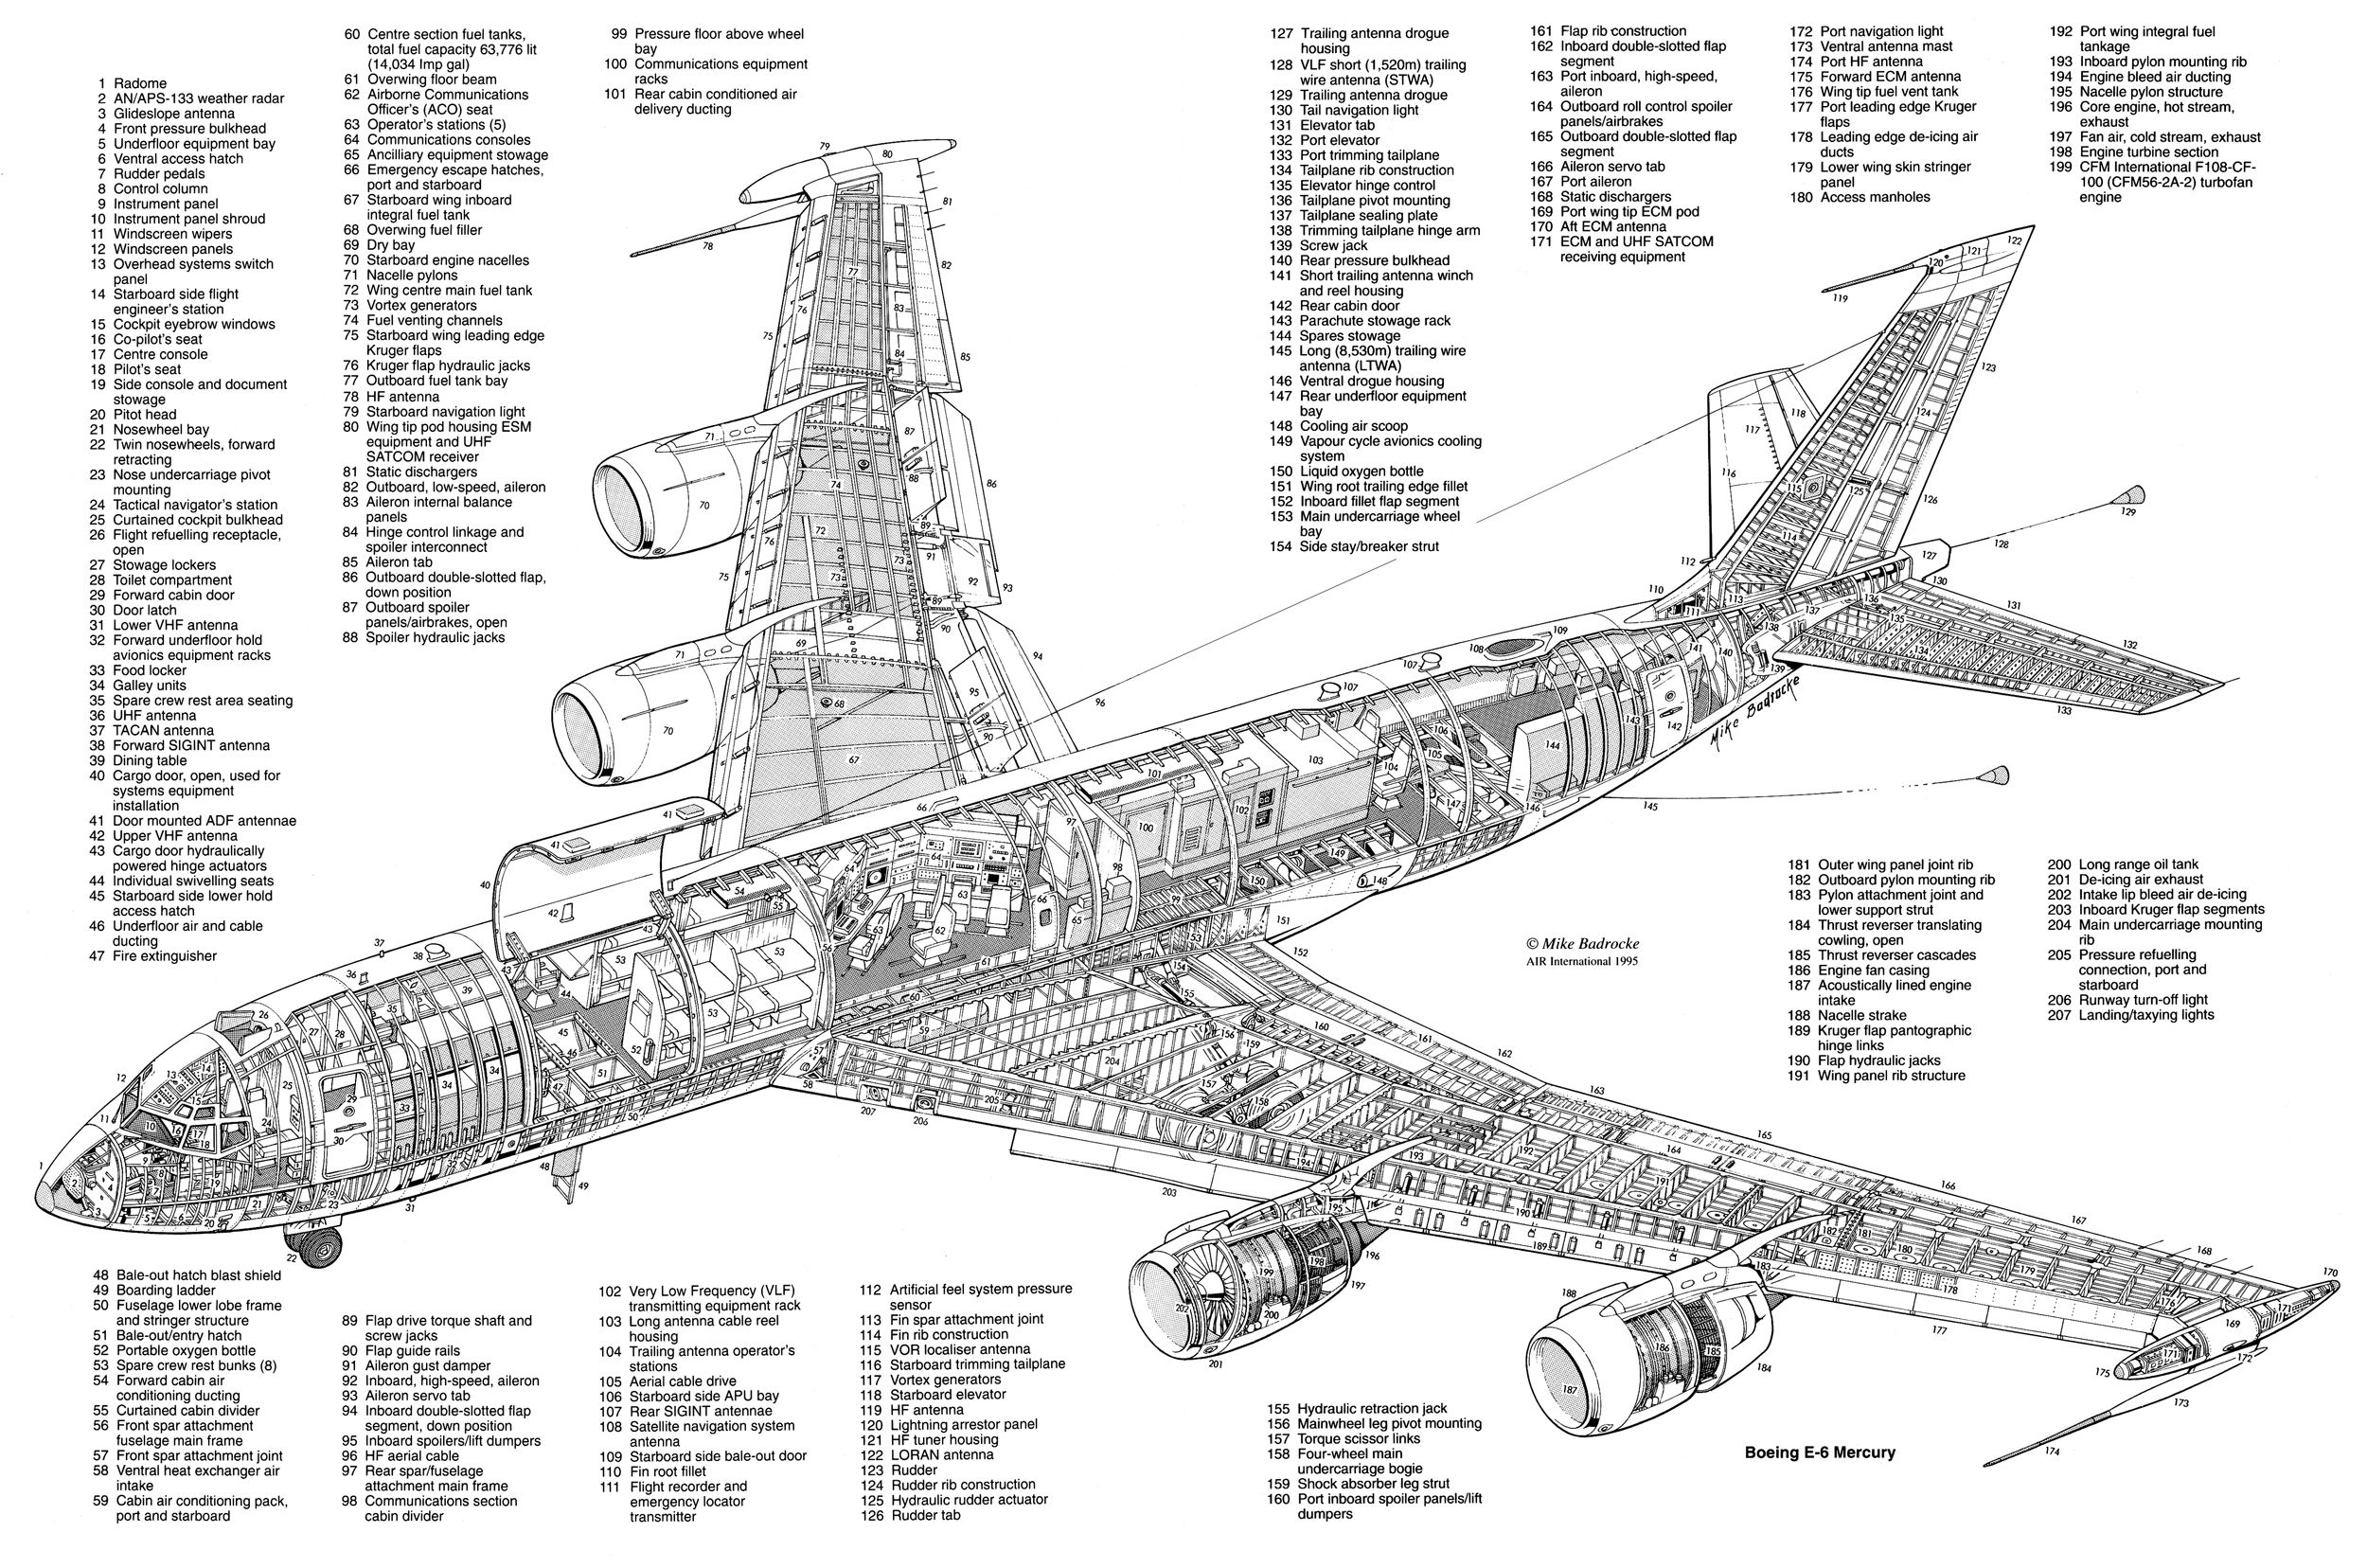 Boeing 737 Maintenance Manual Torrent